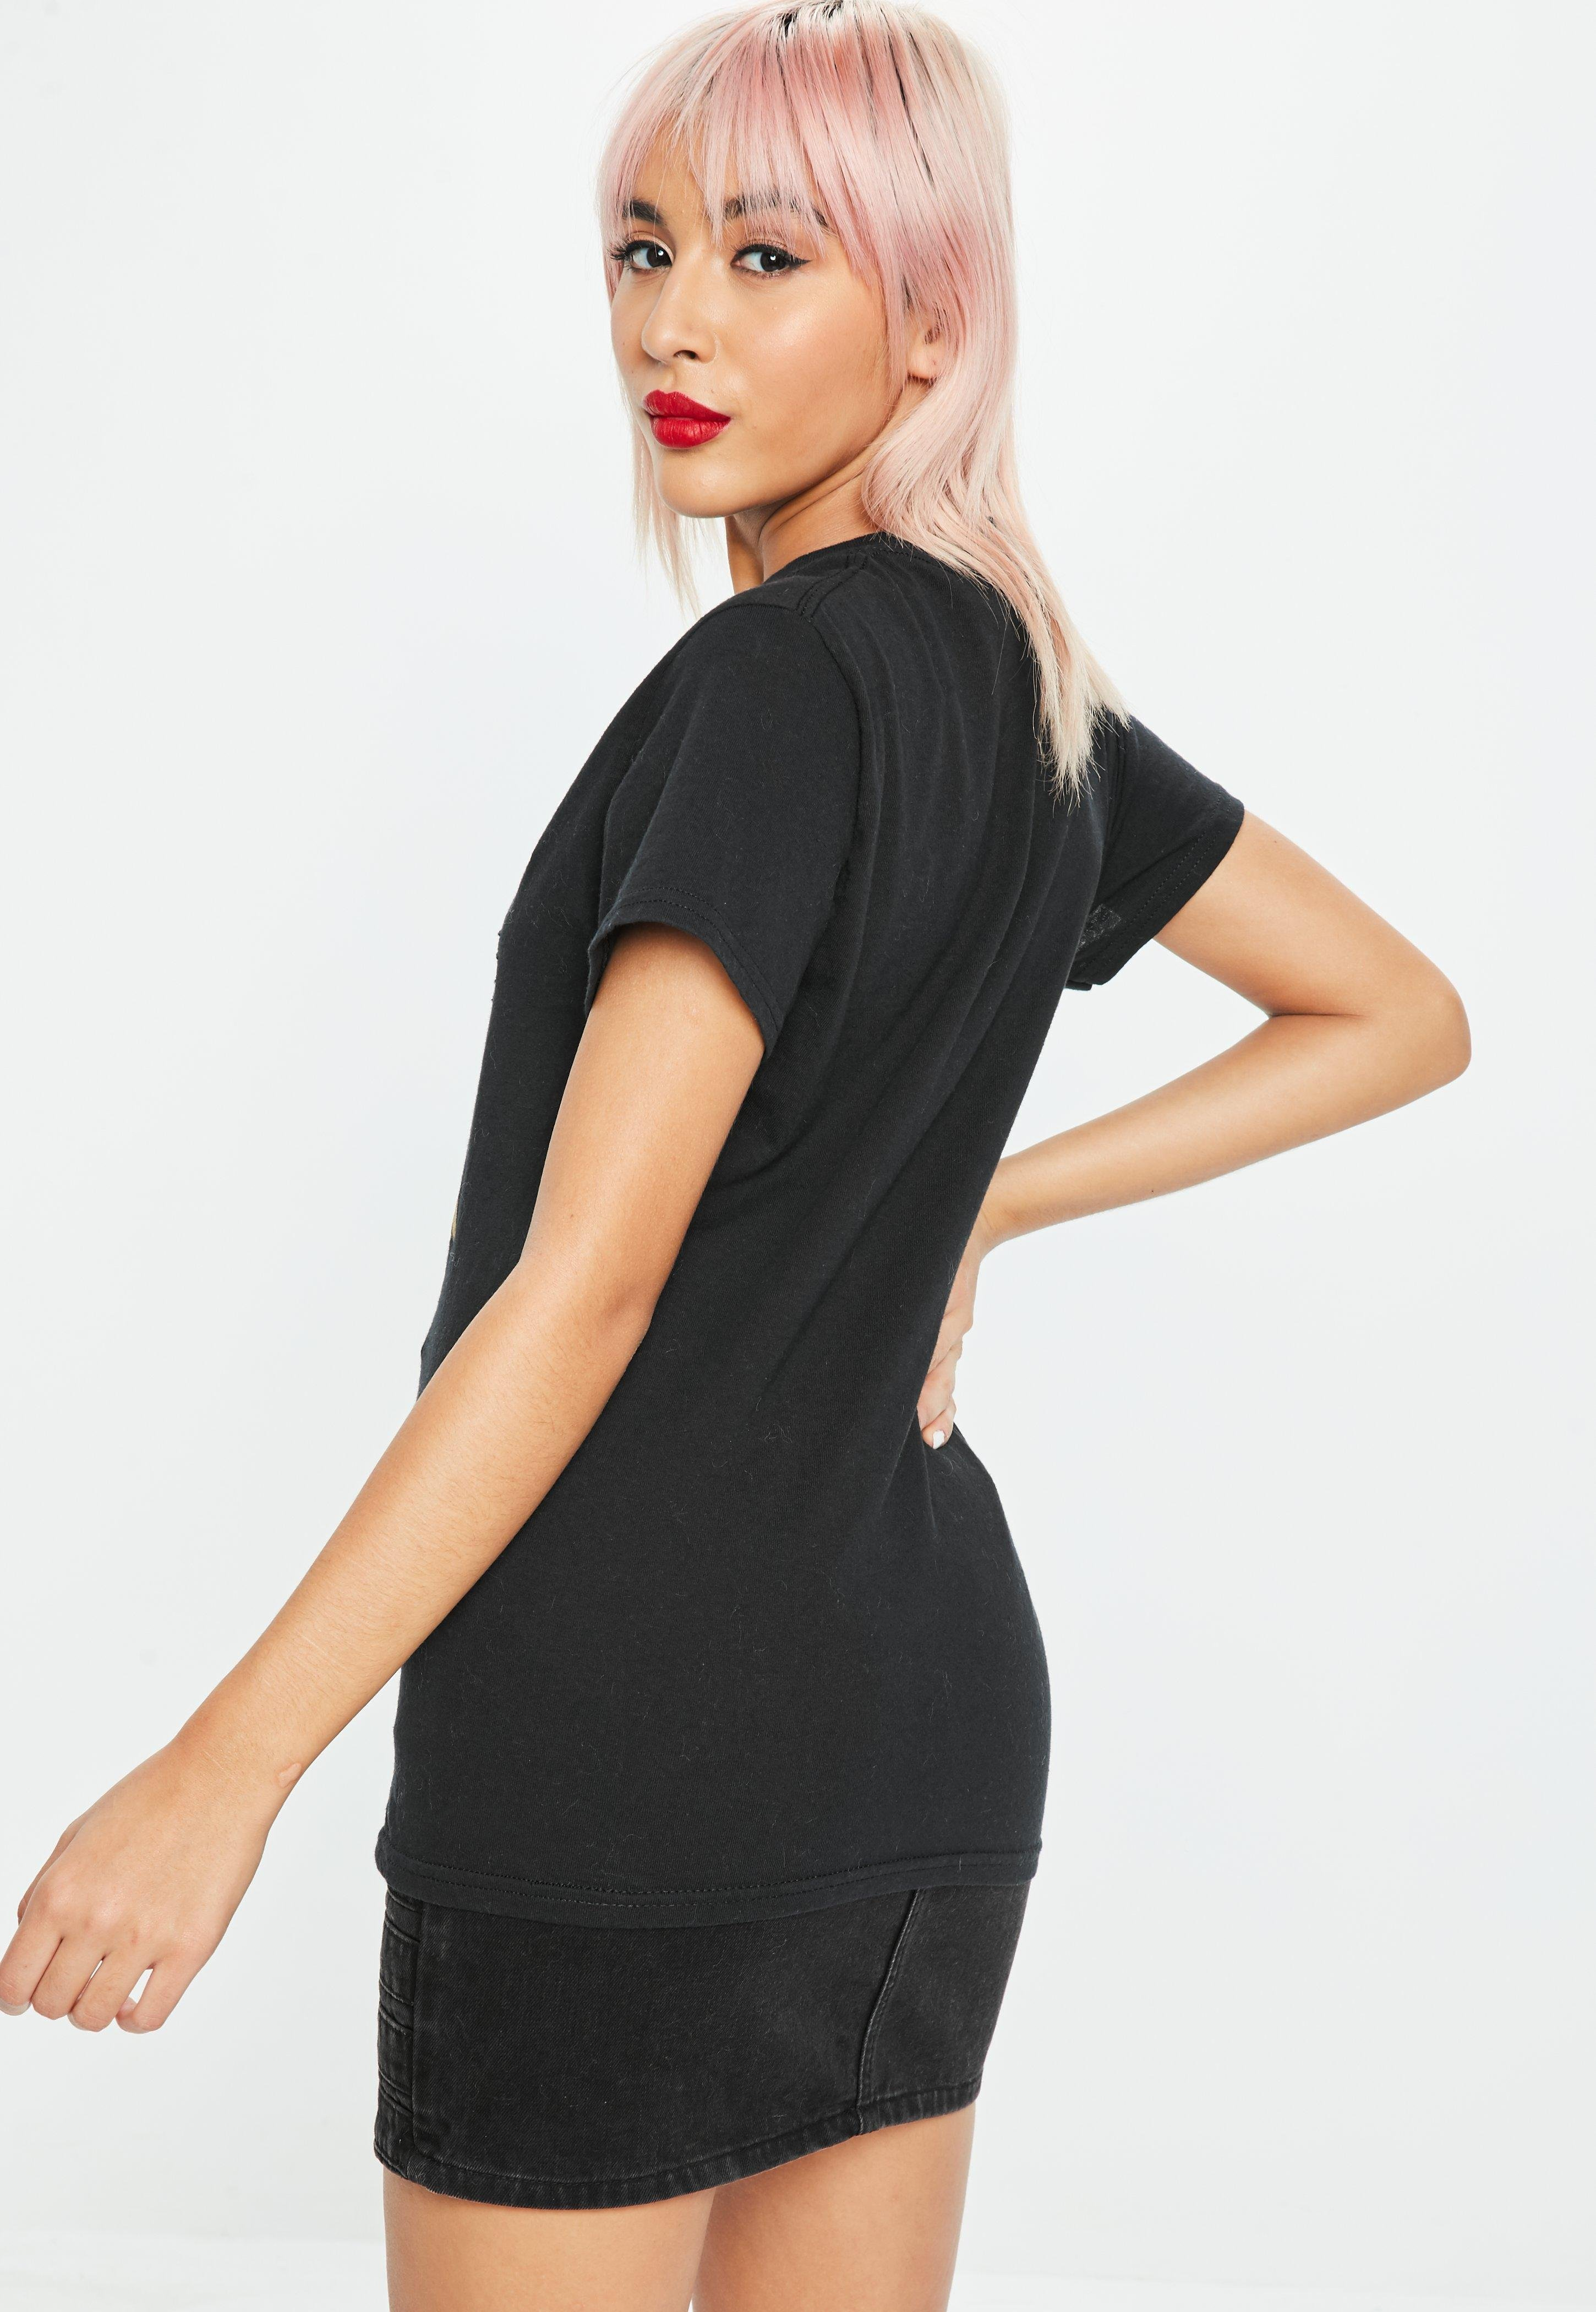 63efec611f8e4b Lyst - Missguided Black Pulp Fiction Graphic Oversized T-shirt in Black